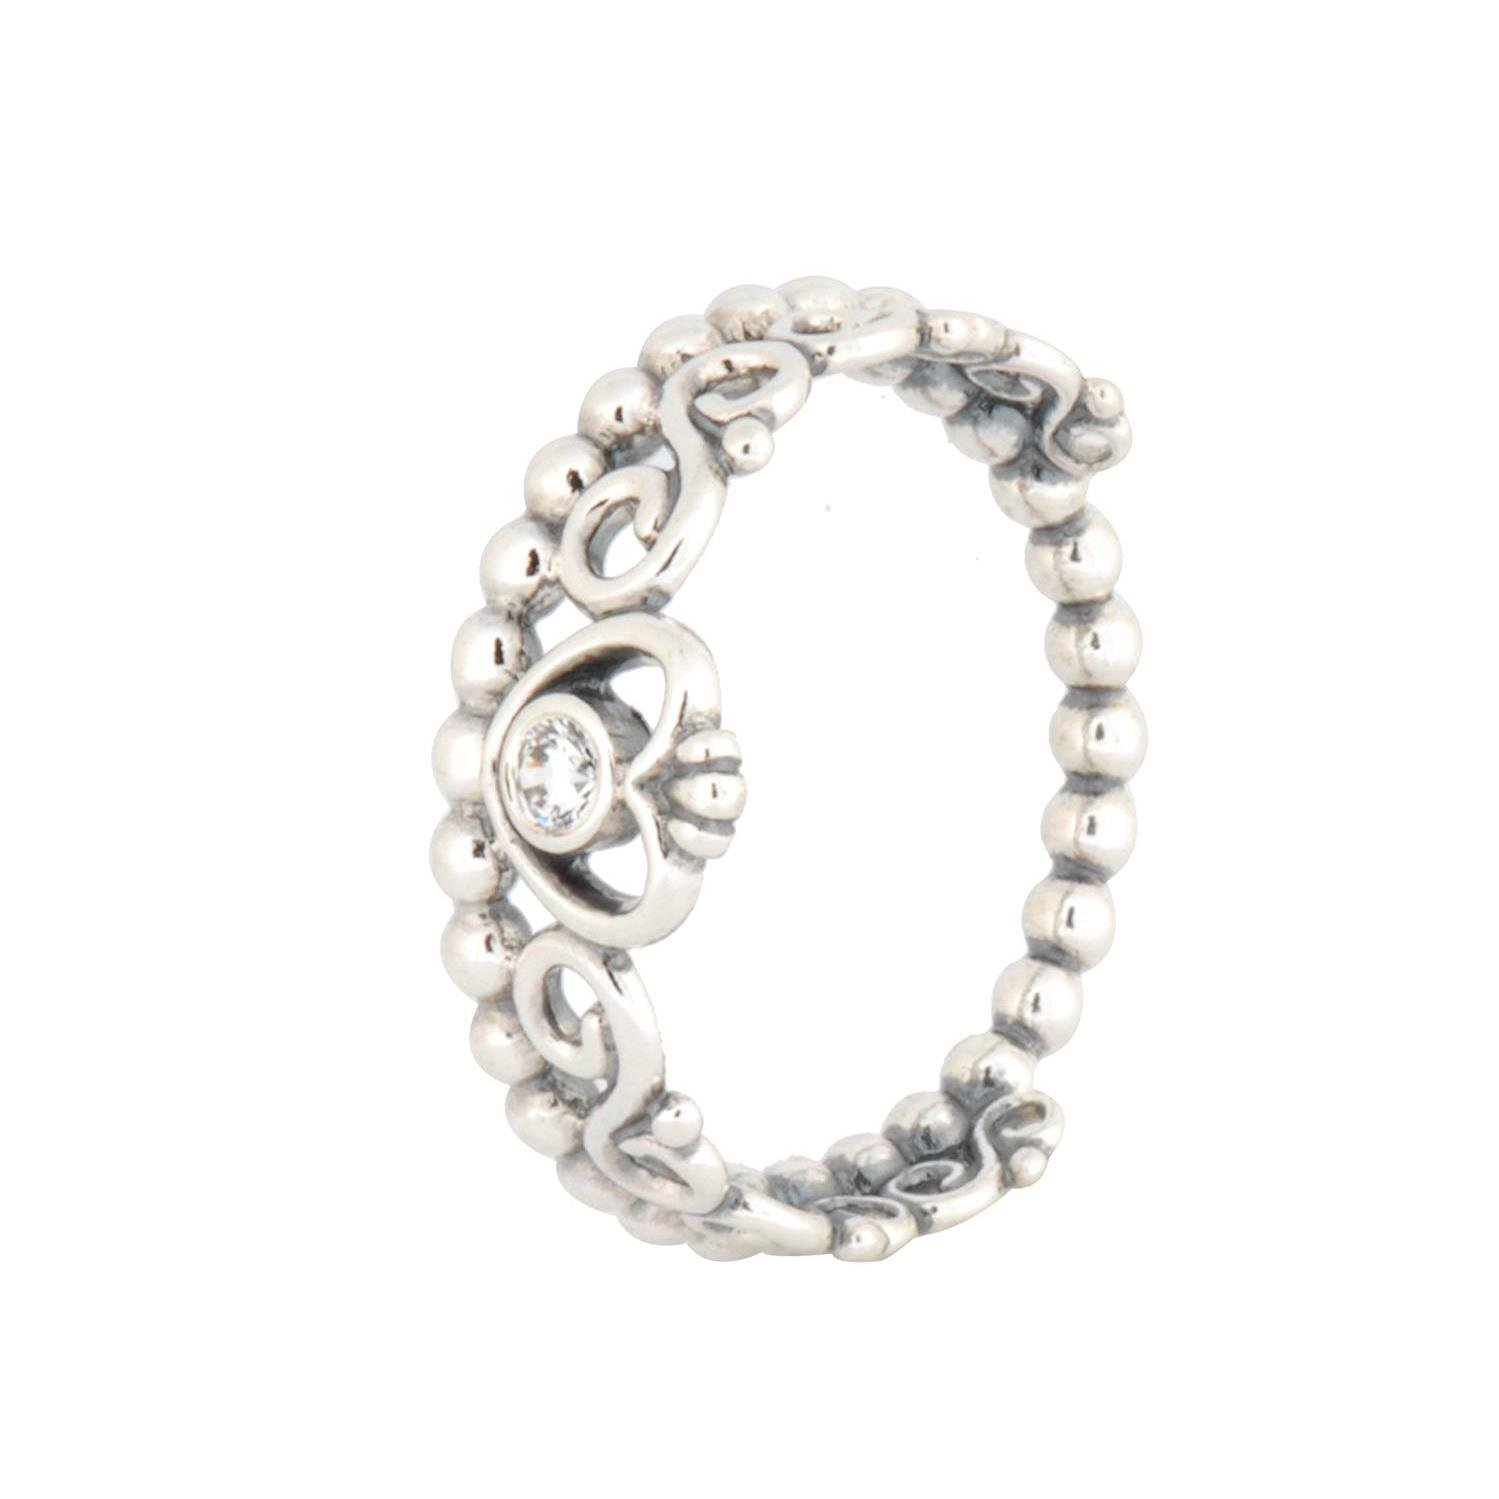 968be295f5b030 Amazon.com: Pandora My Princess Stackable Silver Ring with Clear Cubic  Zirconia 190880CZ60: Jewelry